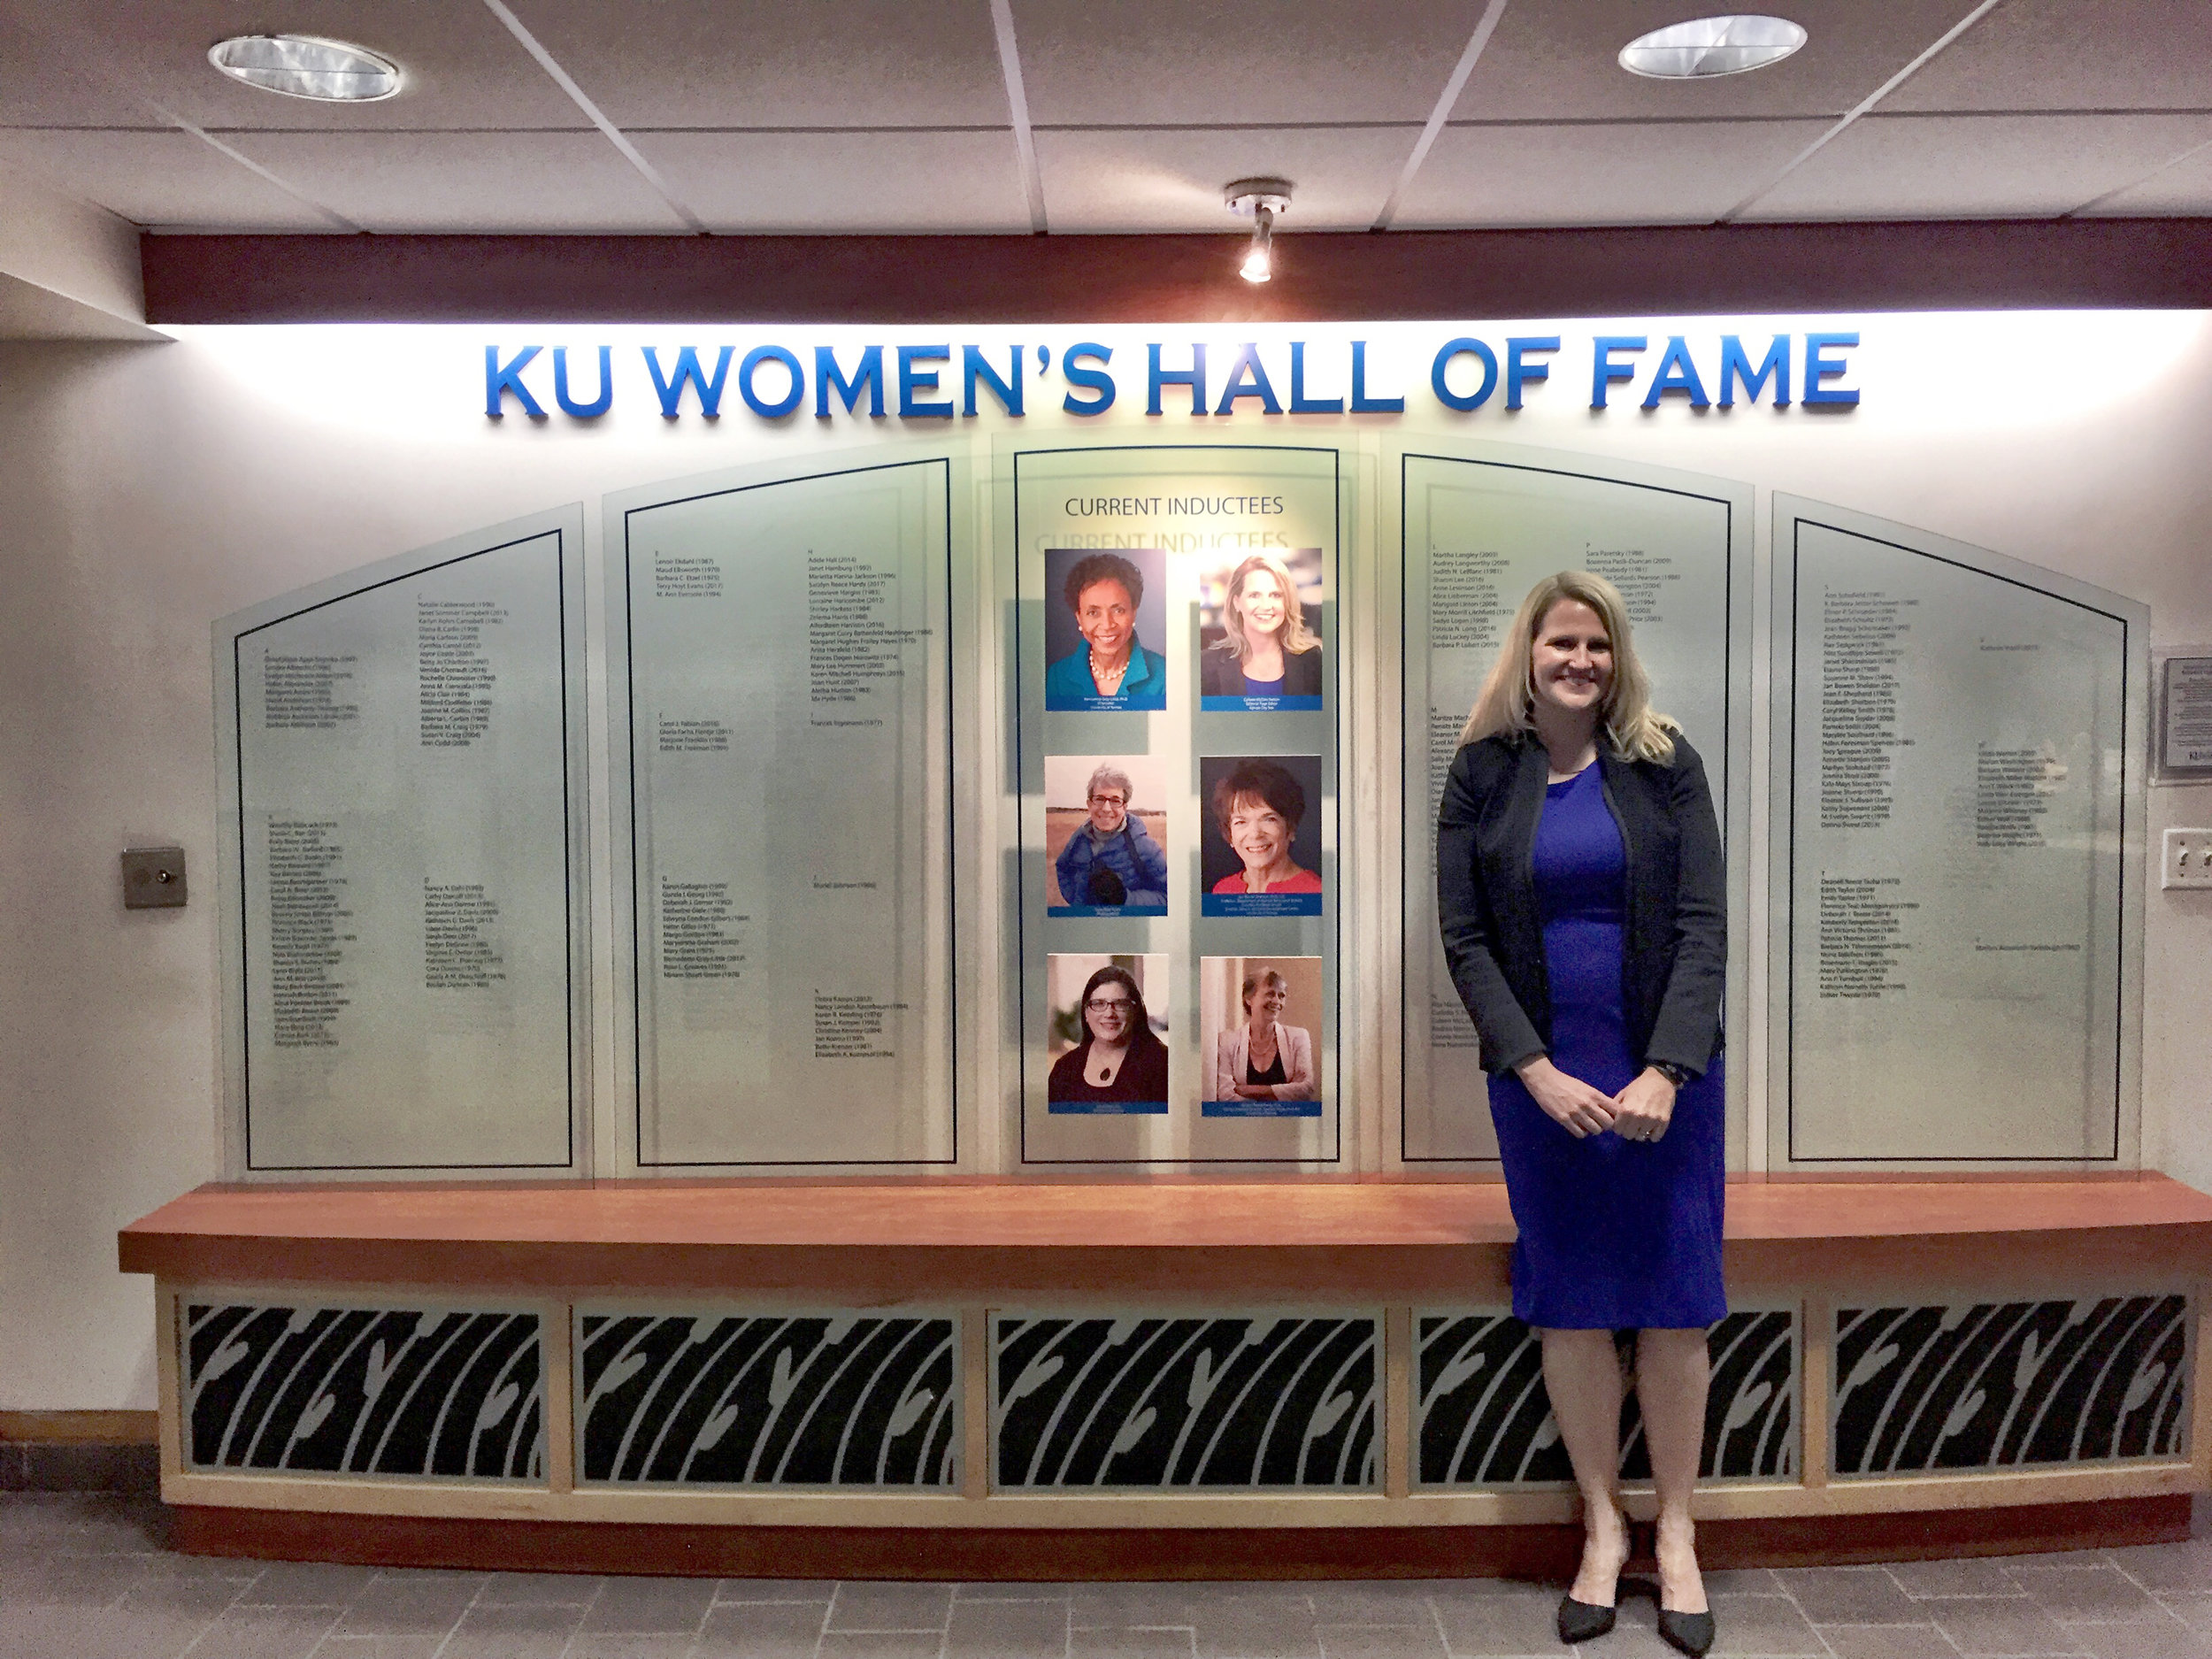 Colleen McCain Nelson  (j'97) was inducted into the KU Women's Hall of Fame in April. Nelson is a Pulitzer Prize-winning journalist and former political reporter. She currently is vice president and editorial page editor at the Kansas City Star.